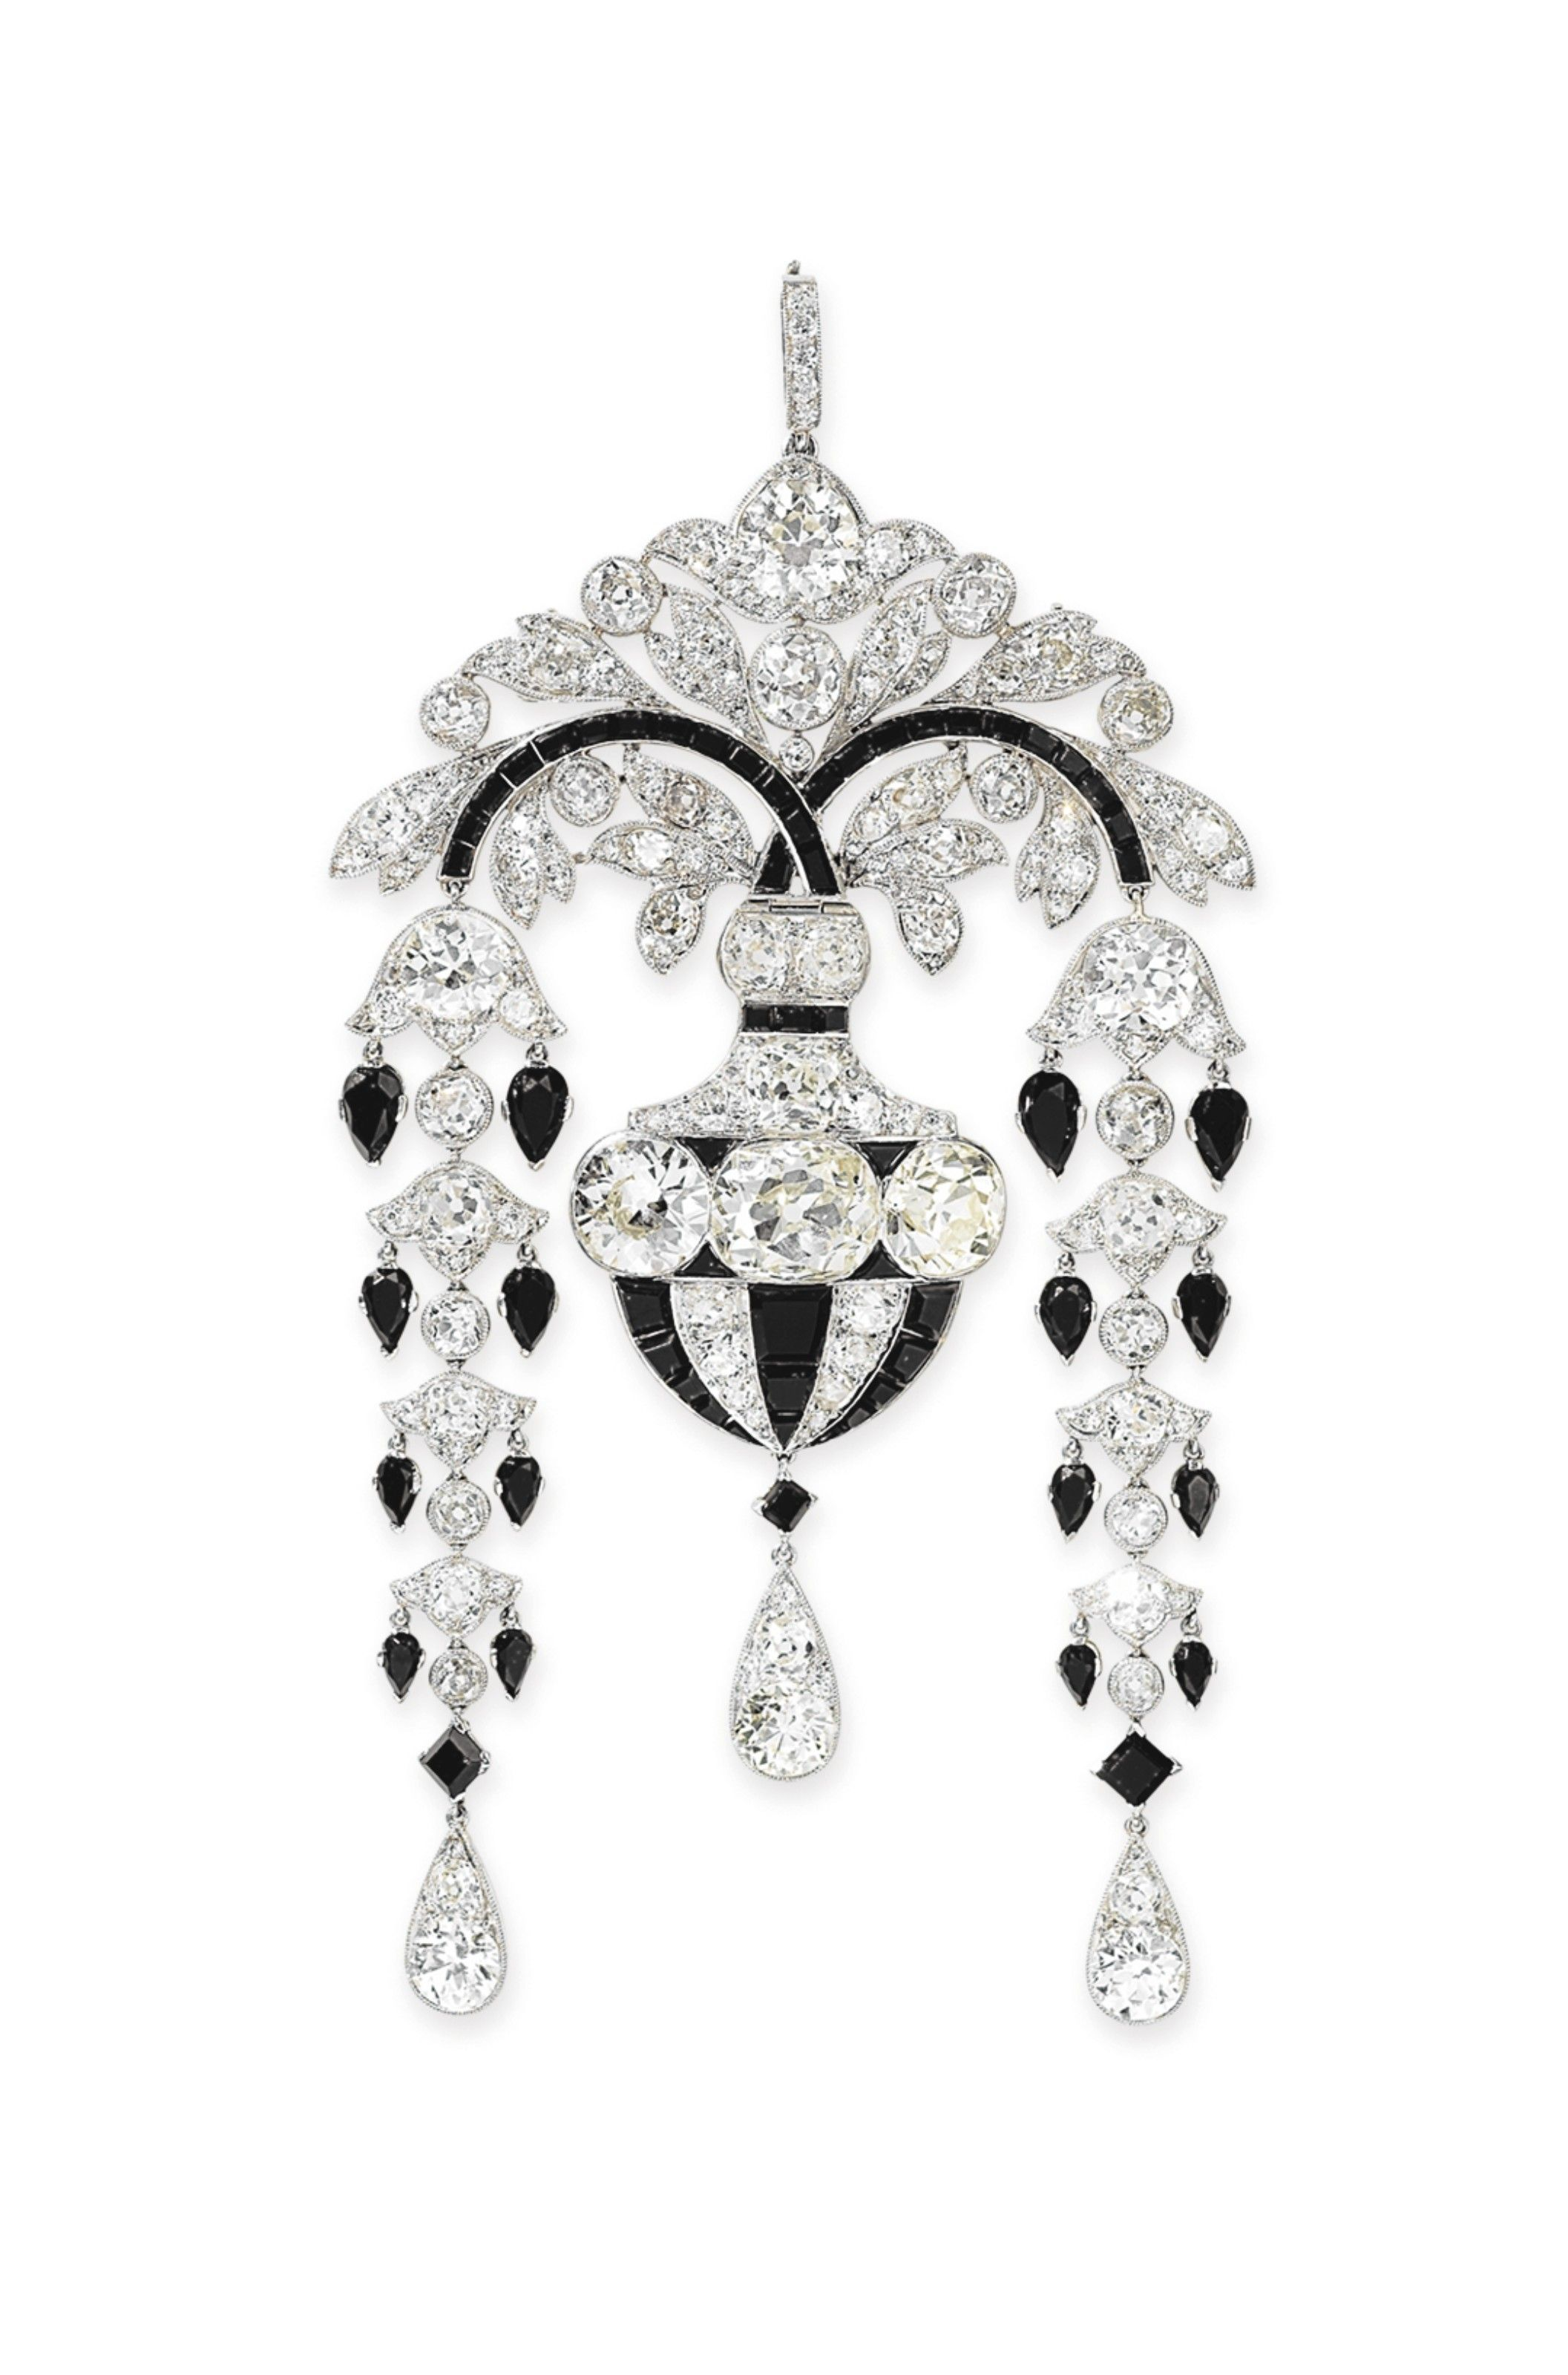 An Exquisite Art Deco Diamond And Onyx Pendant Brooch By